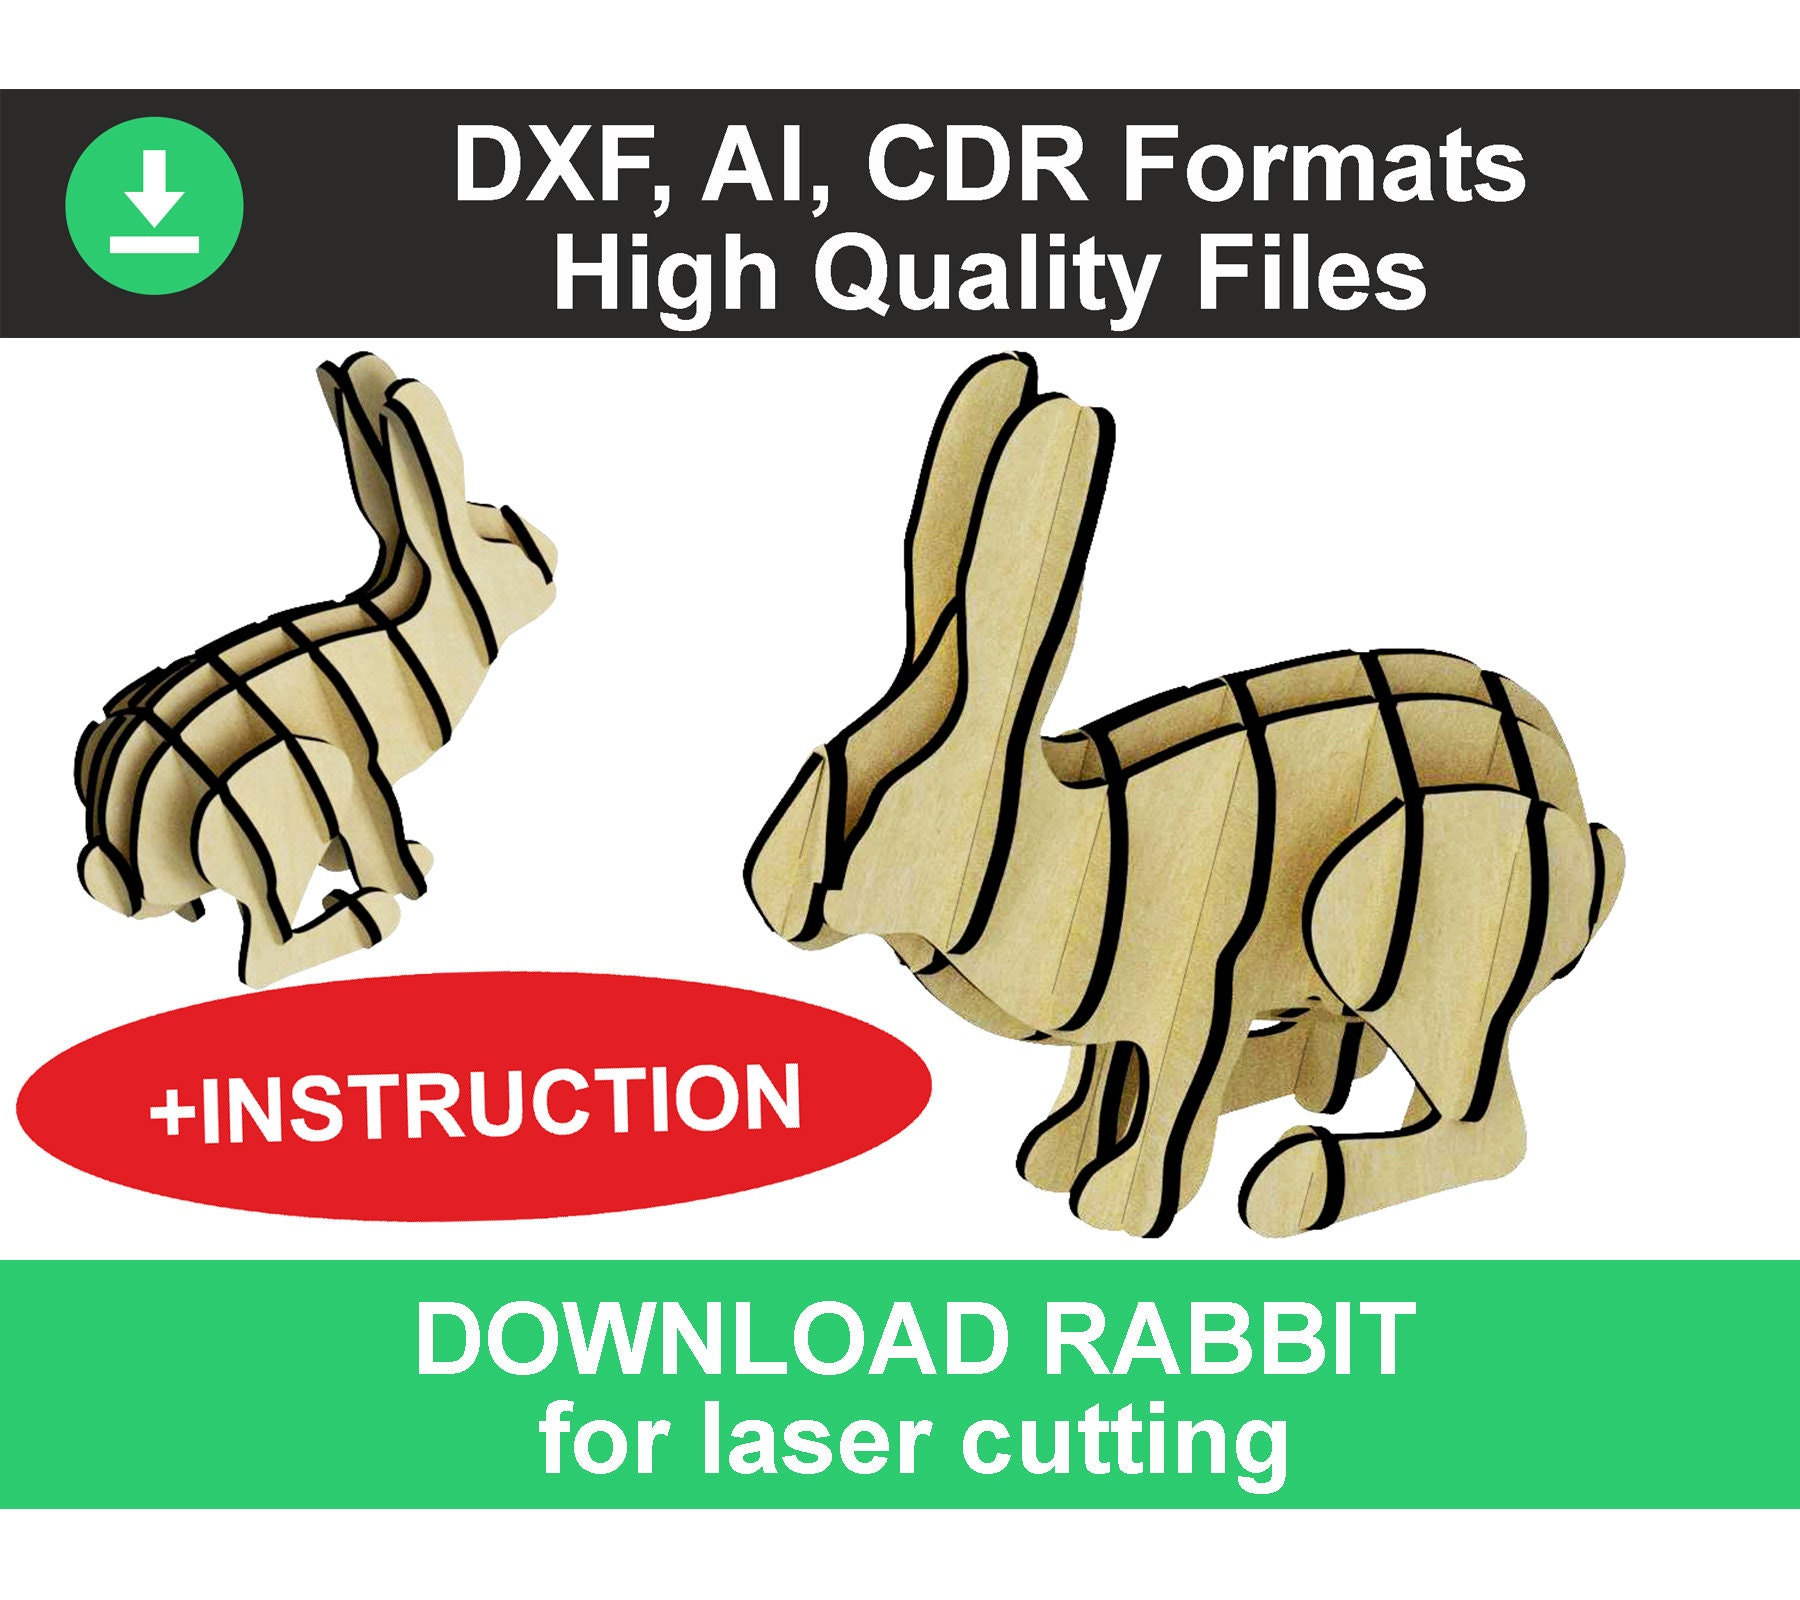 3d Puzzle Easter Rabbit Dxf Files Easter Bunny Laser Cut Files Plywood Laser Cut Wood Easter Decorations Dxf Rabbit Easter Svg Laser Cut Dxf